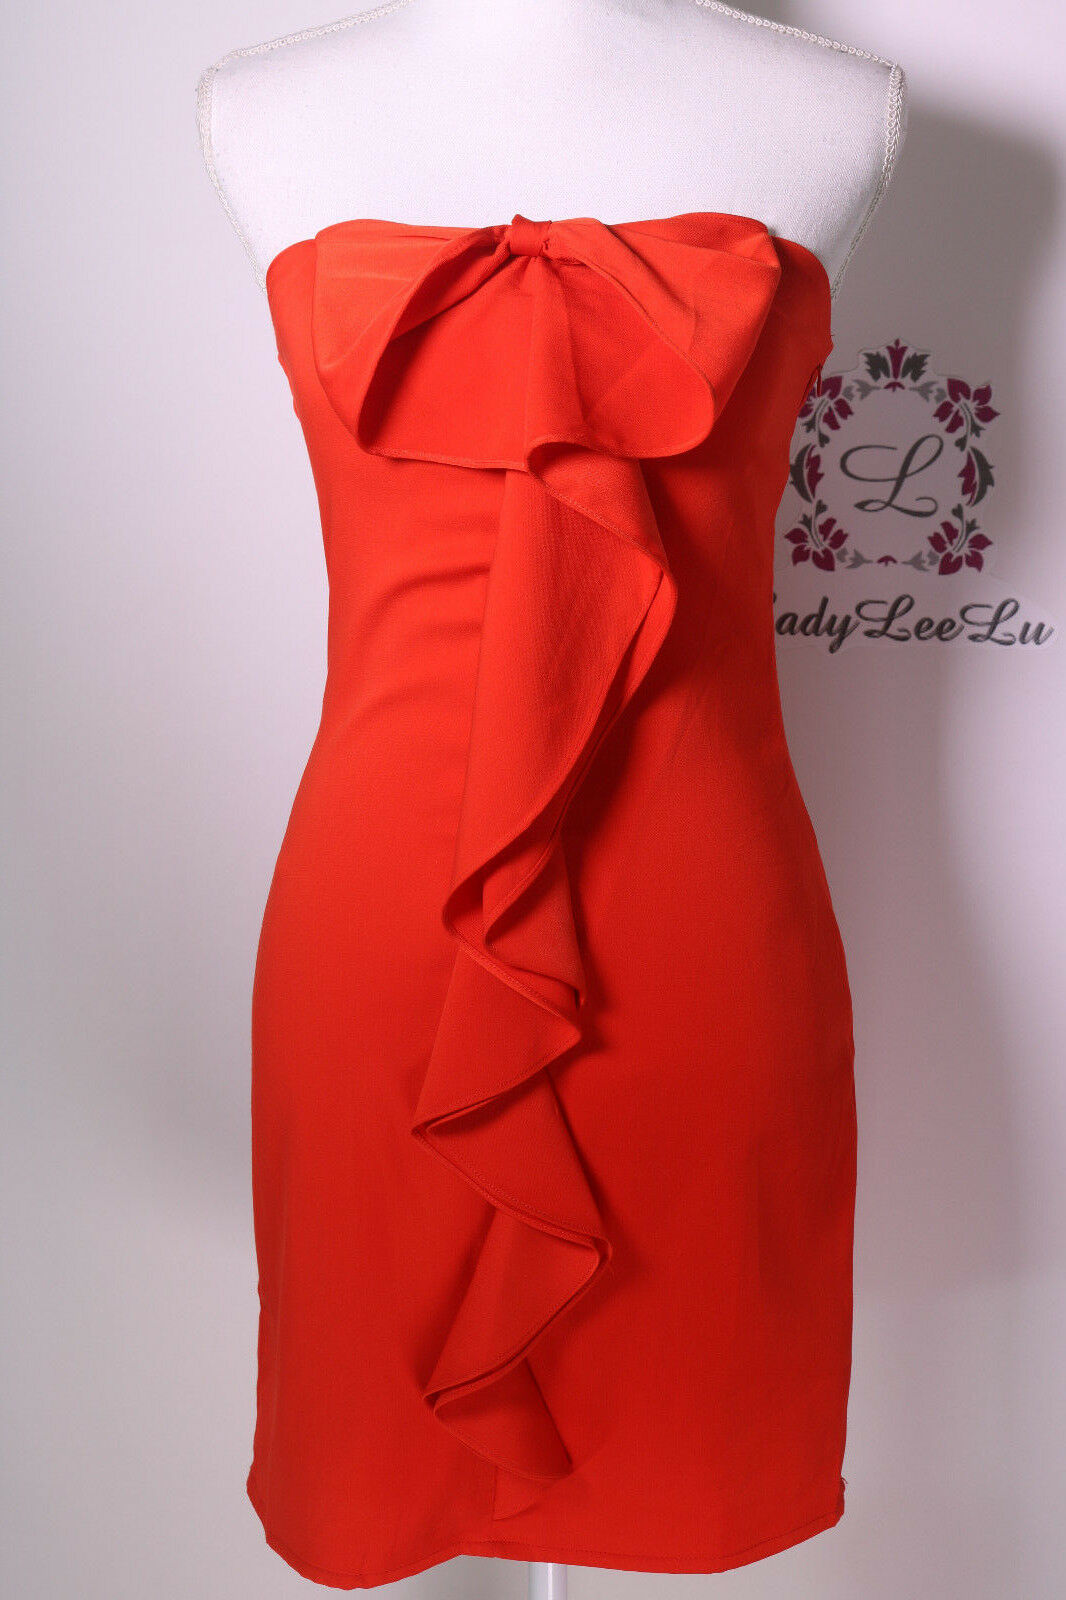 Gianni Bini Cameron Bow Front Sheath Dress Size Red S New NWT